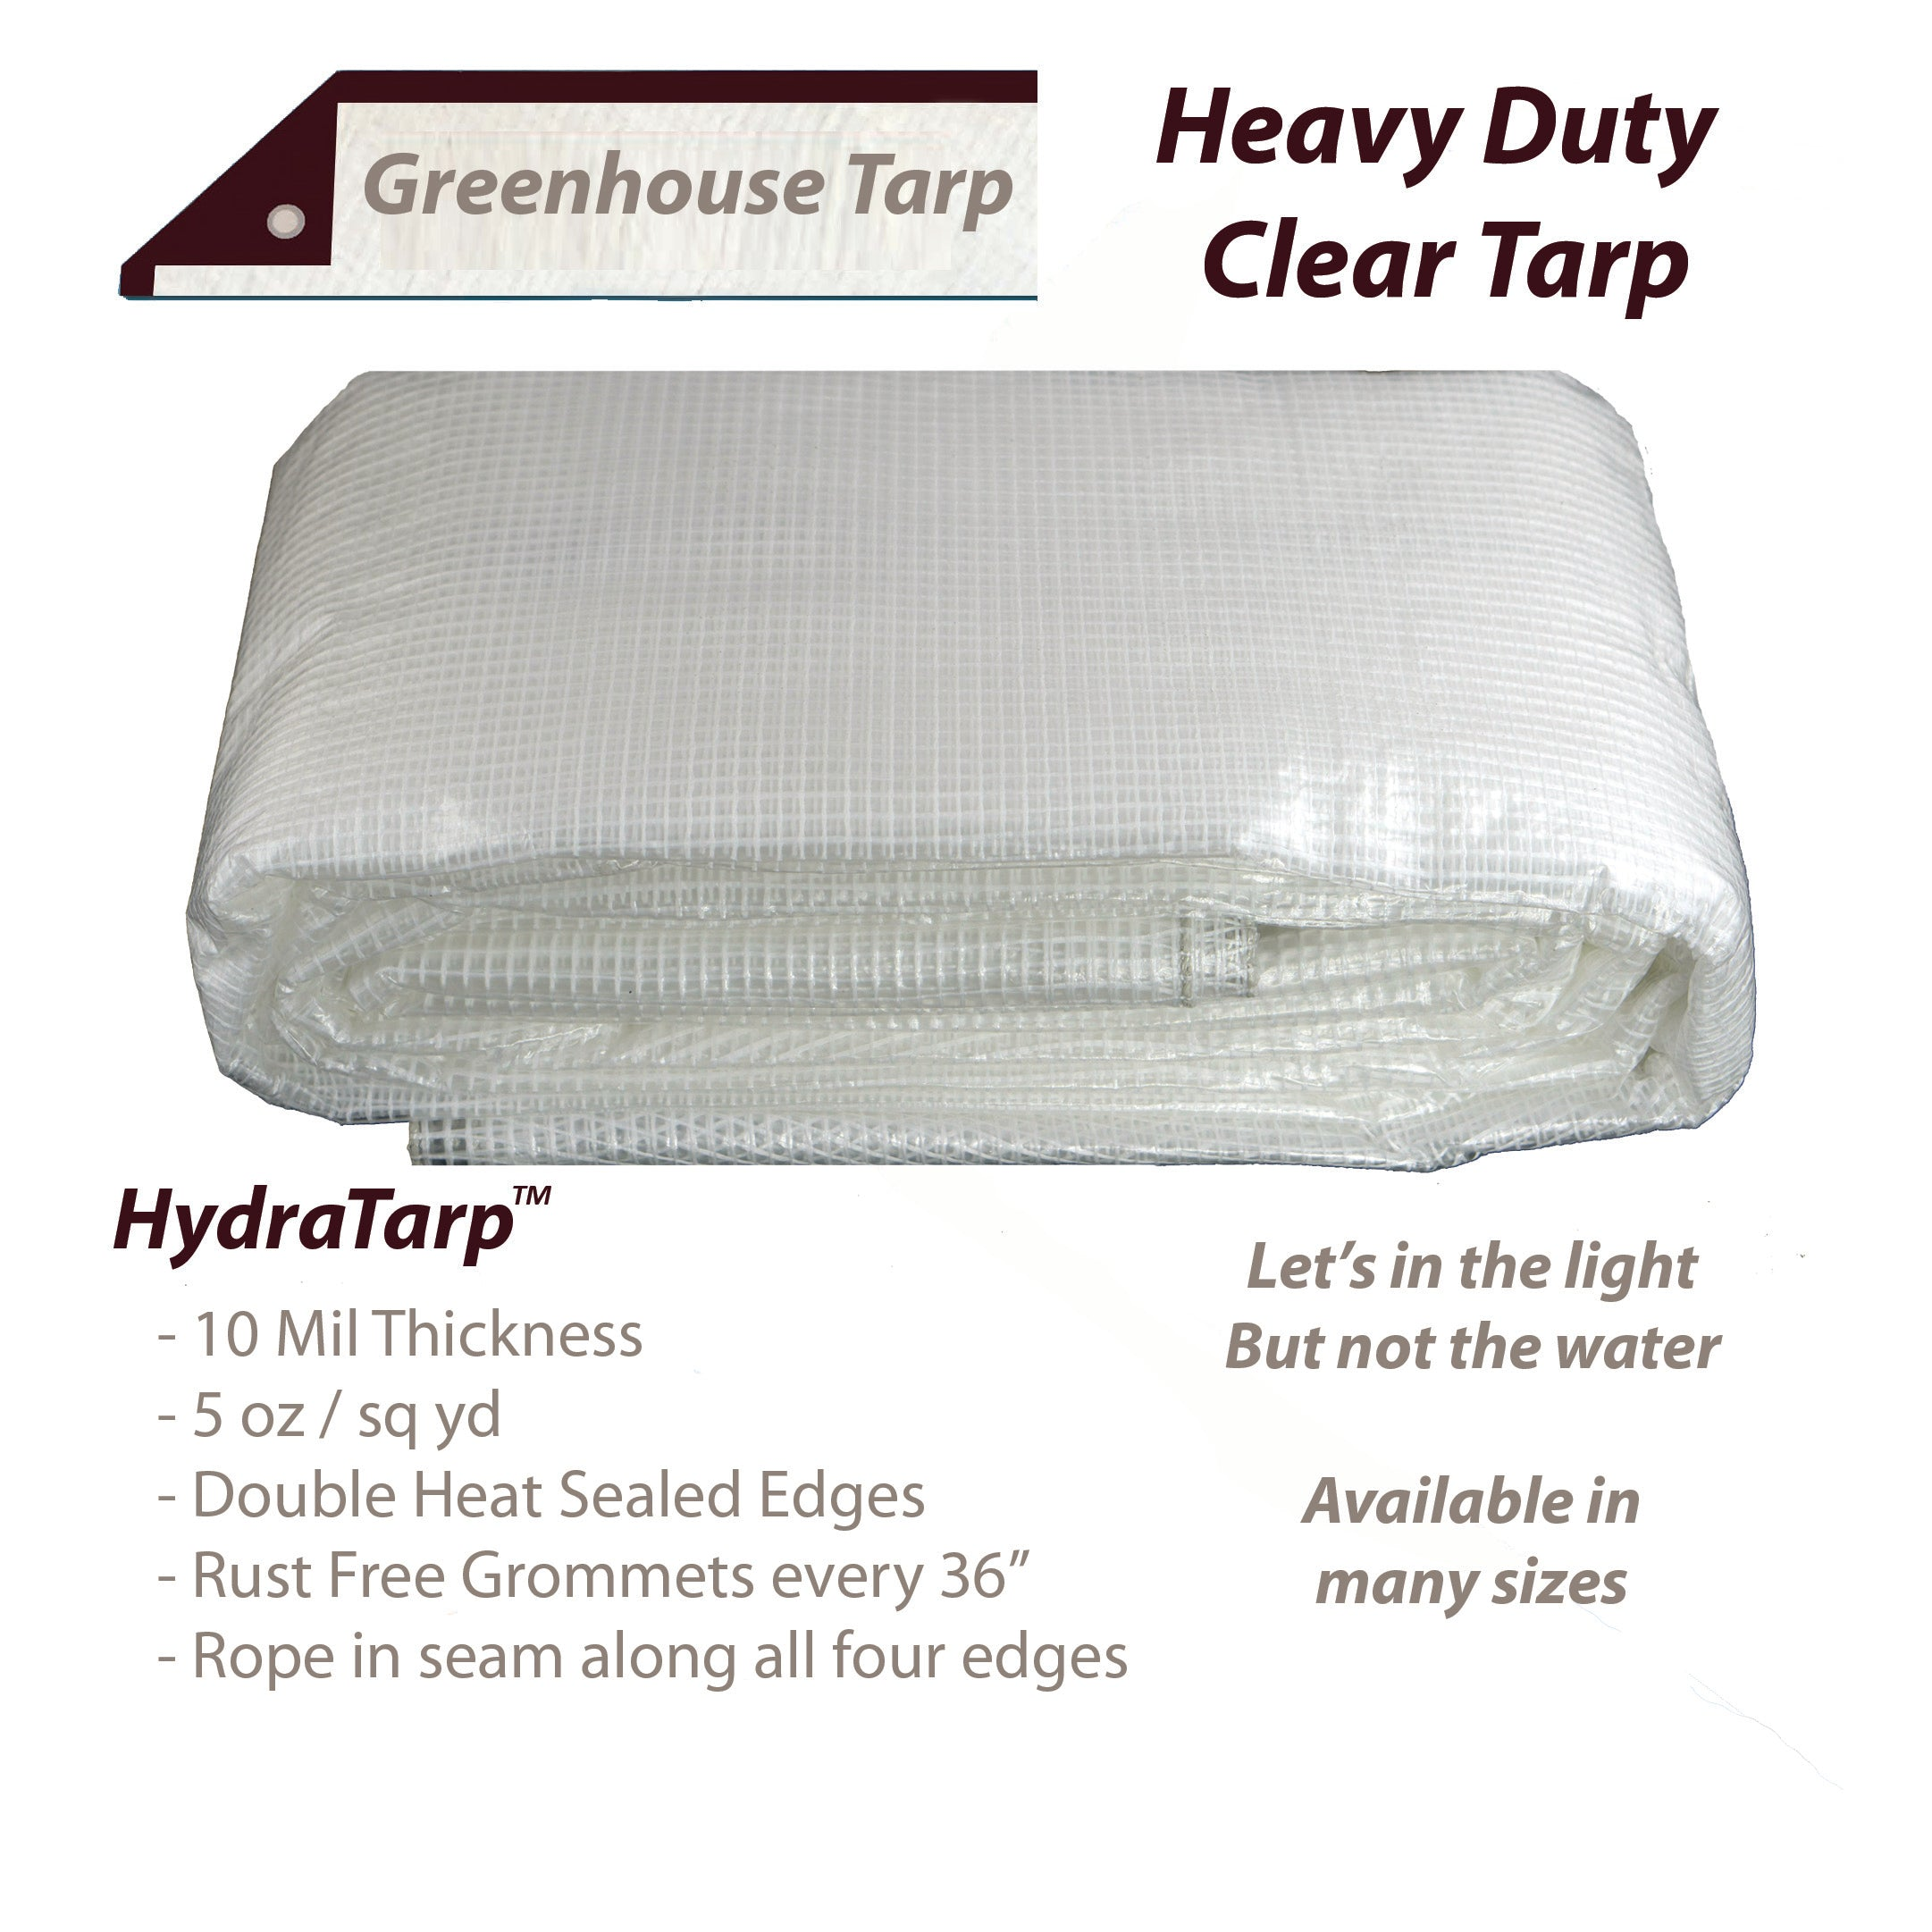 Watershed Innovations HydraTarp 12 Ft 16mil Thick X 16 Ft Super Heavy Duty Waterproof Tarp White // Brown Reversible Tarp